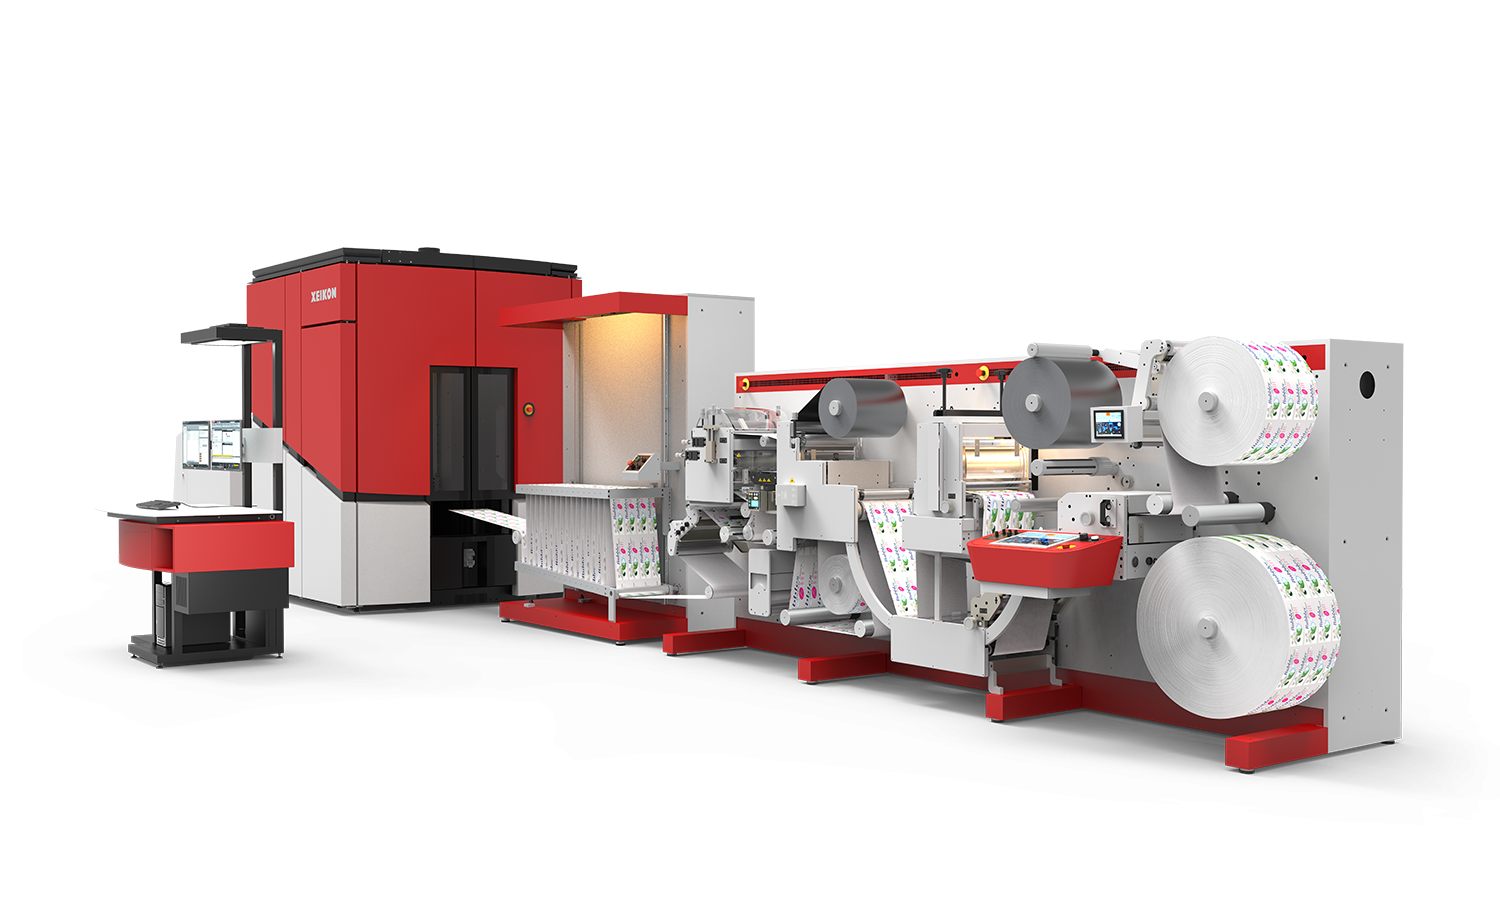 Xeikon Self-Adhesive Label Suite